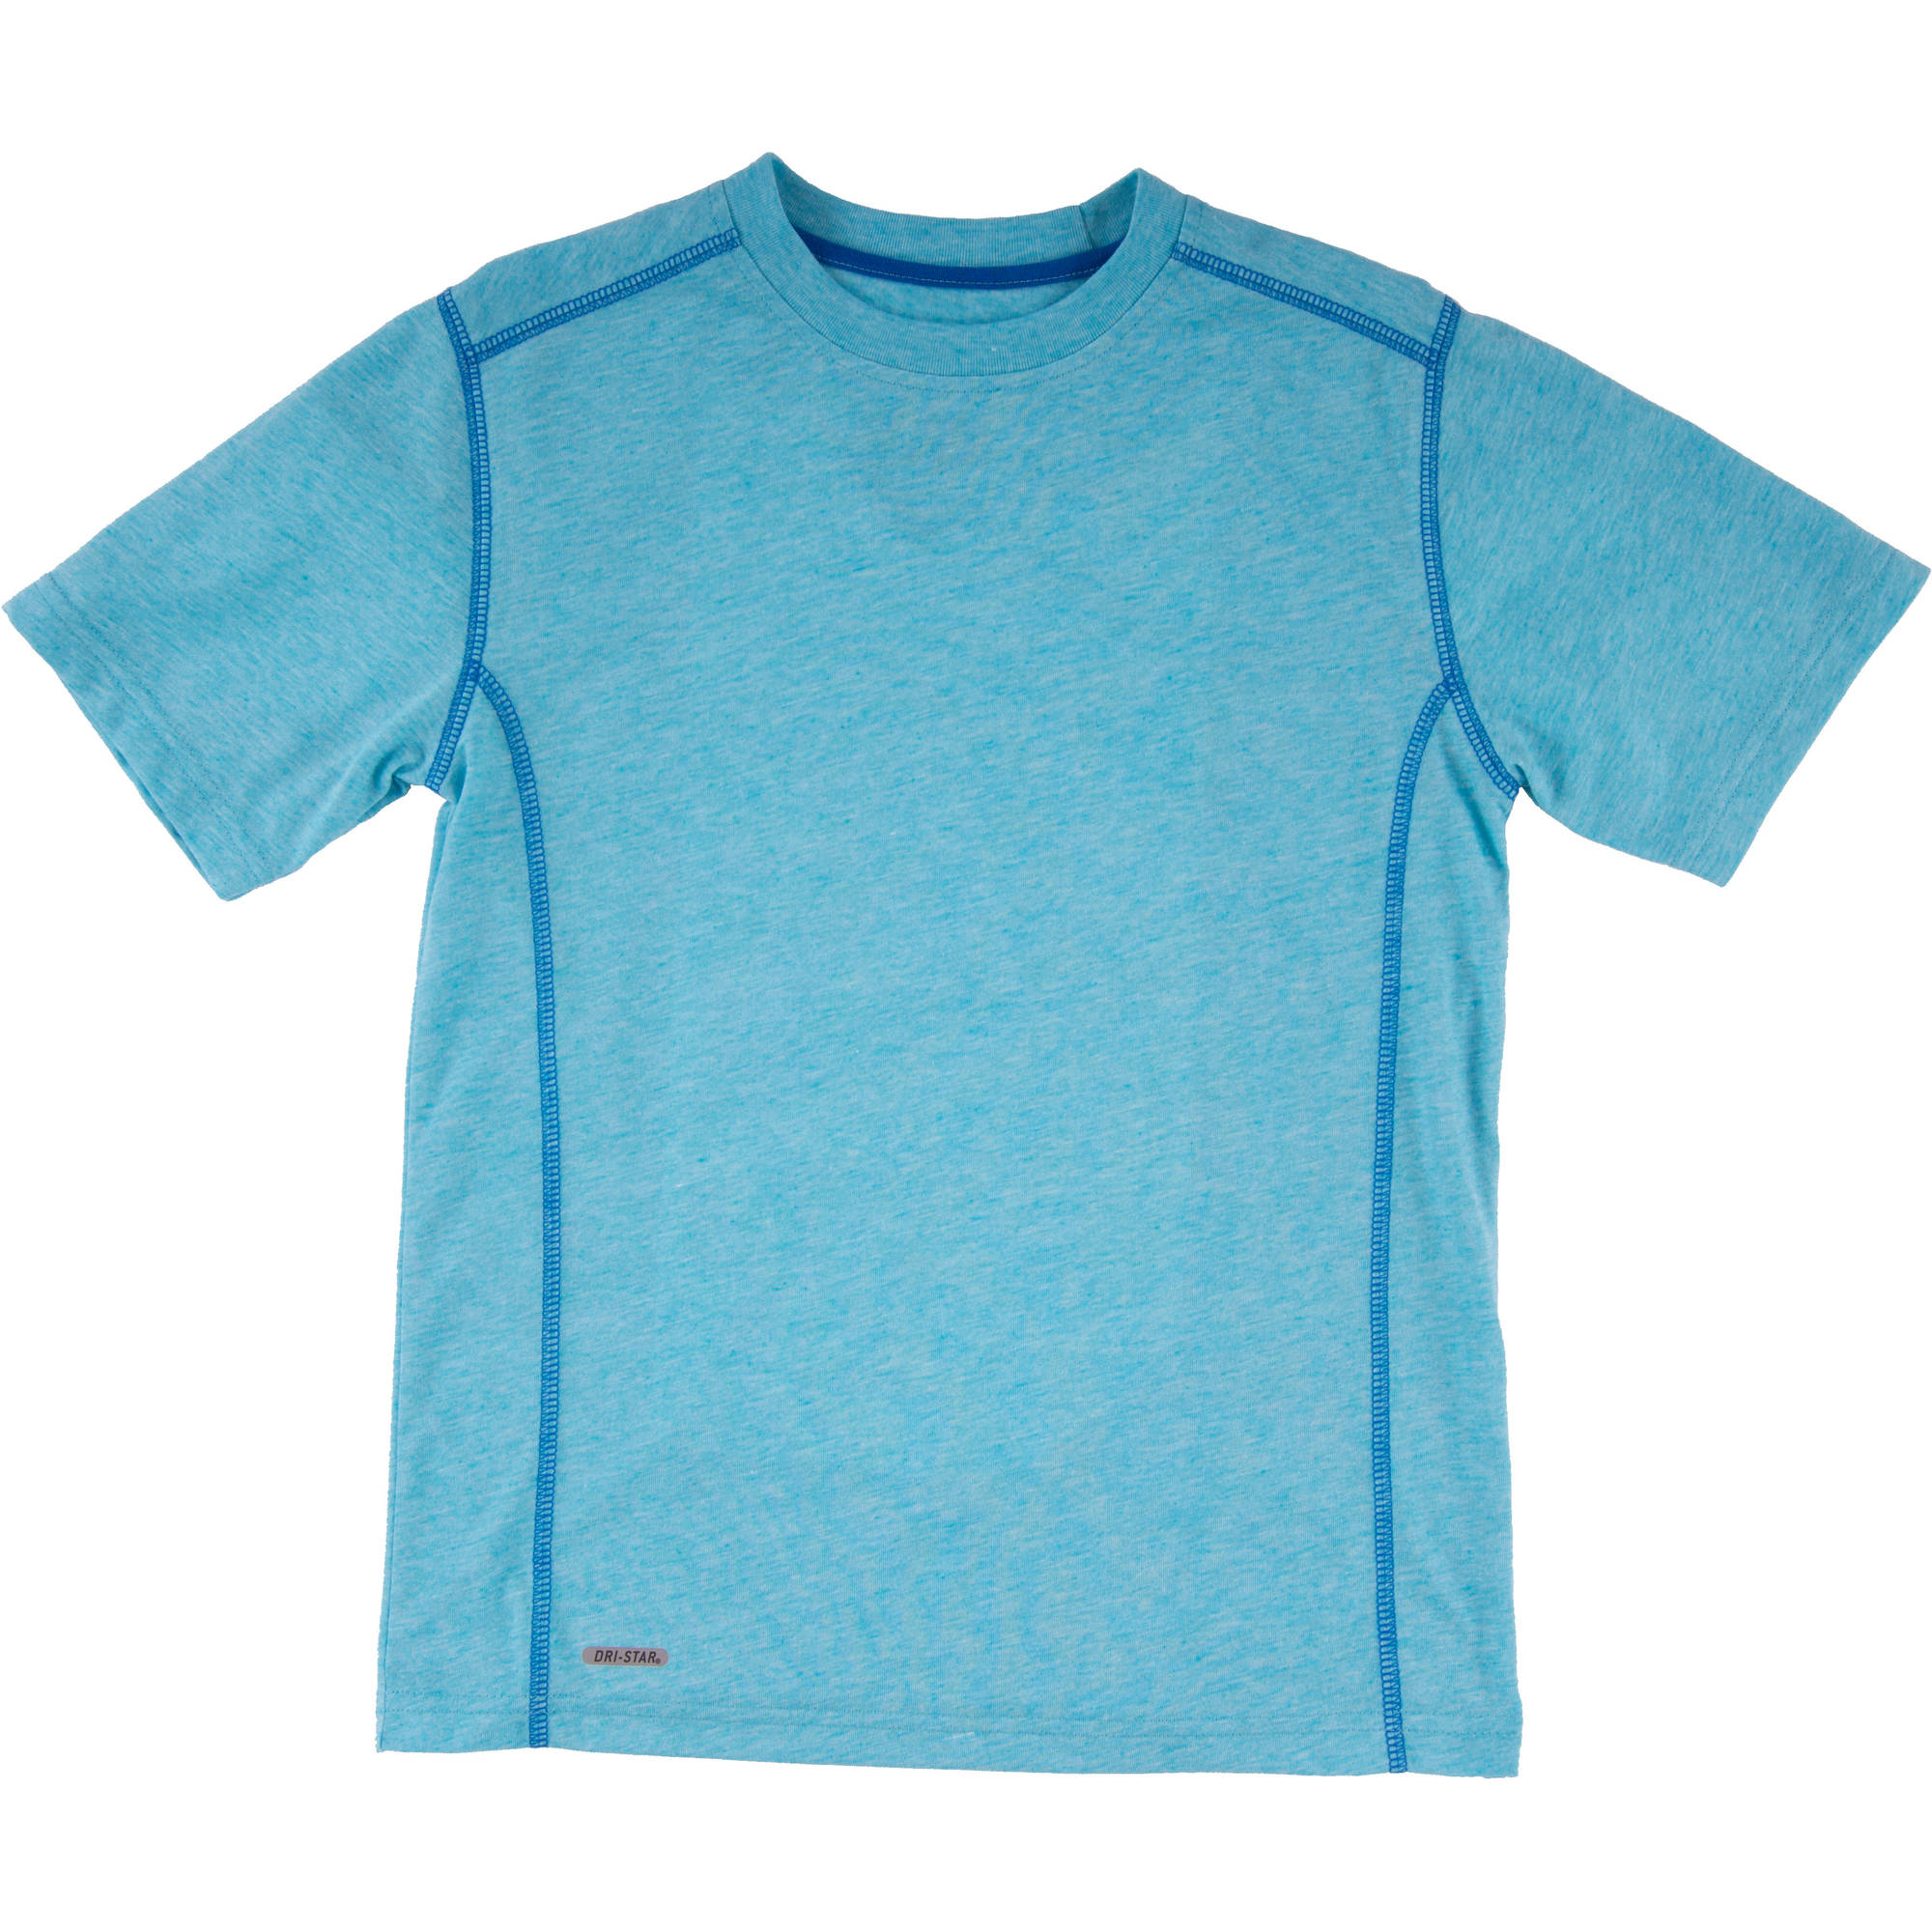 Starter Boys' Short Sleeve Dri-More Performance Tee